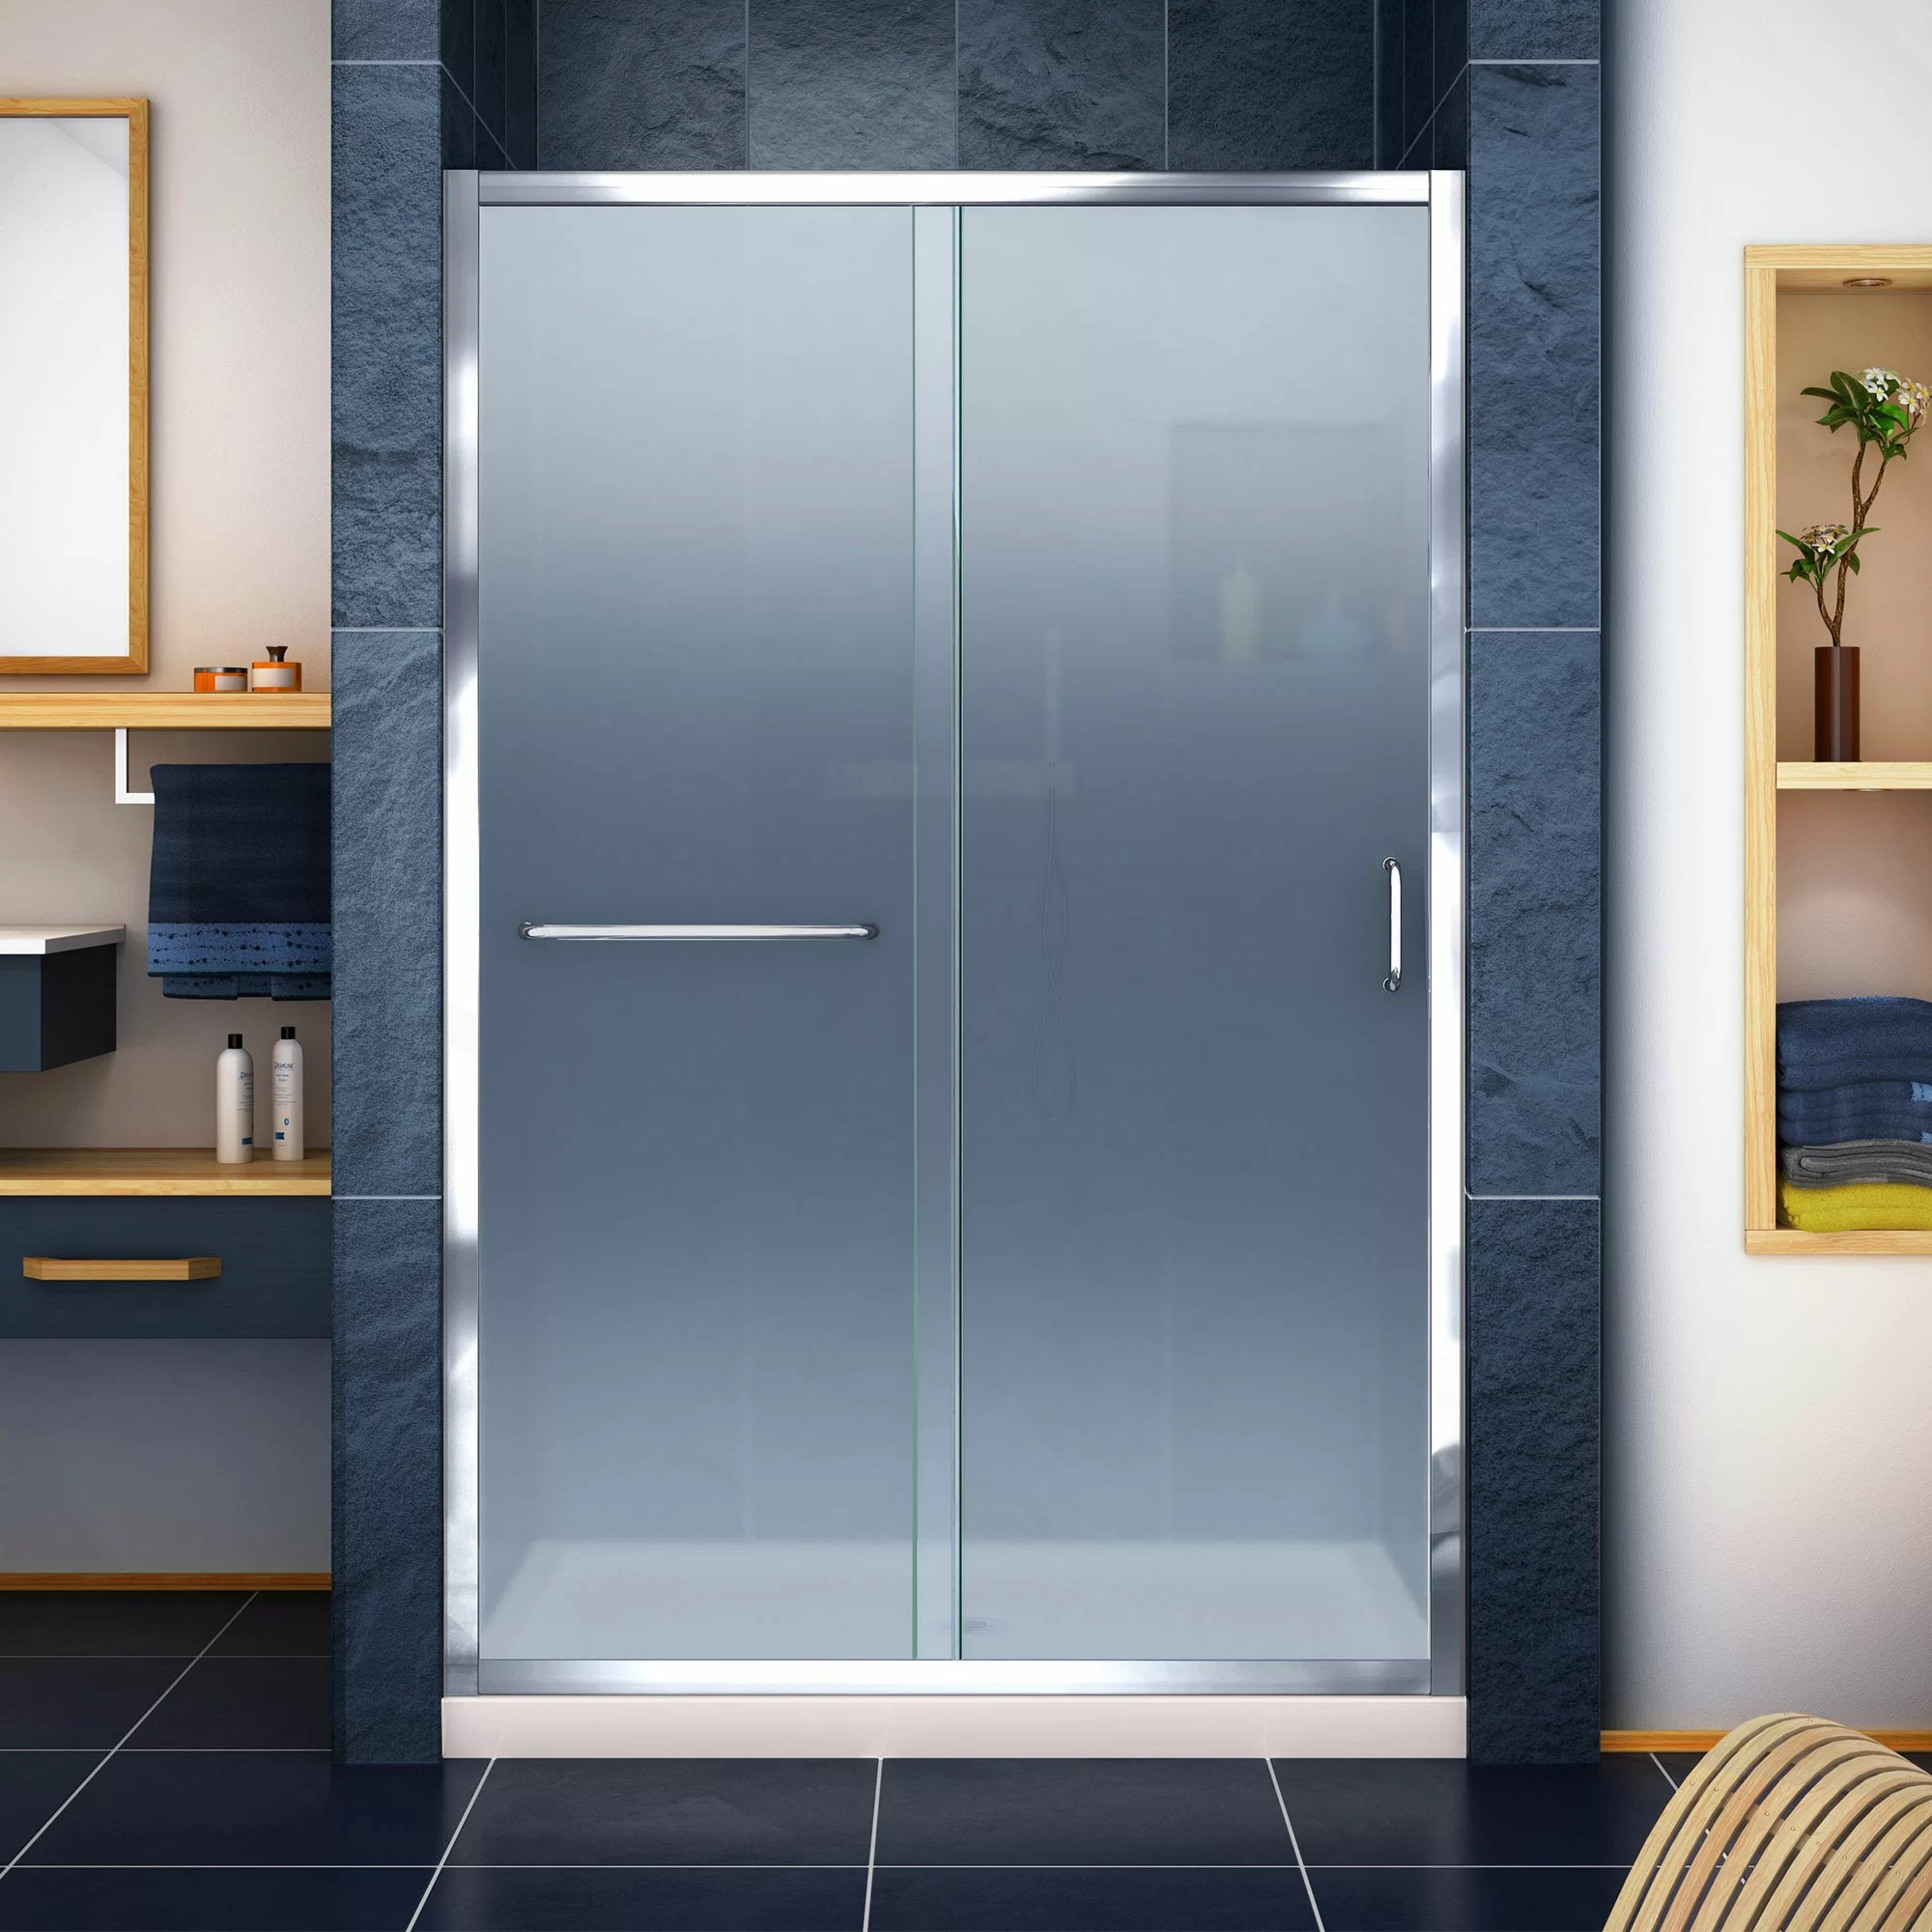 Infinity Z Frosted 48 X 74 75 Rectangle Sliding Shower Enclosure With Base